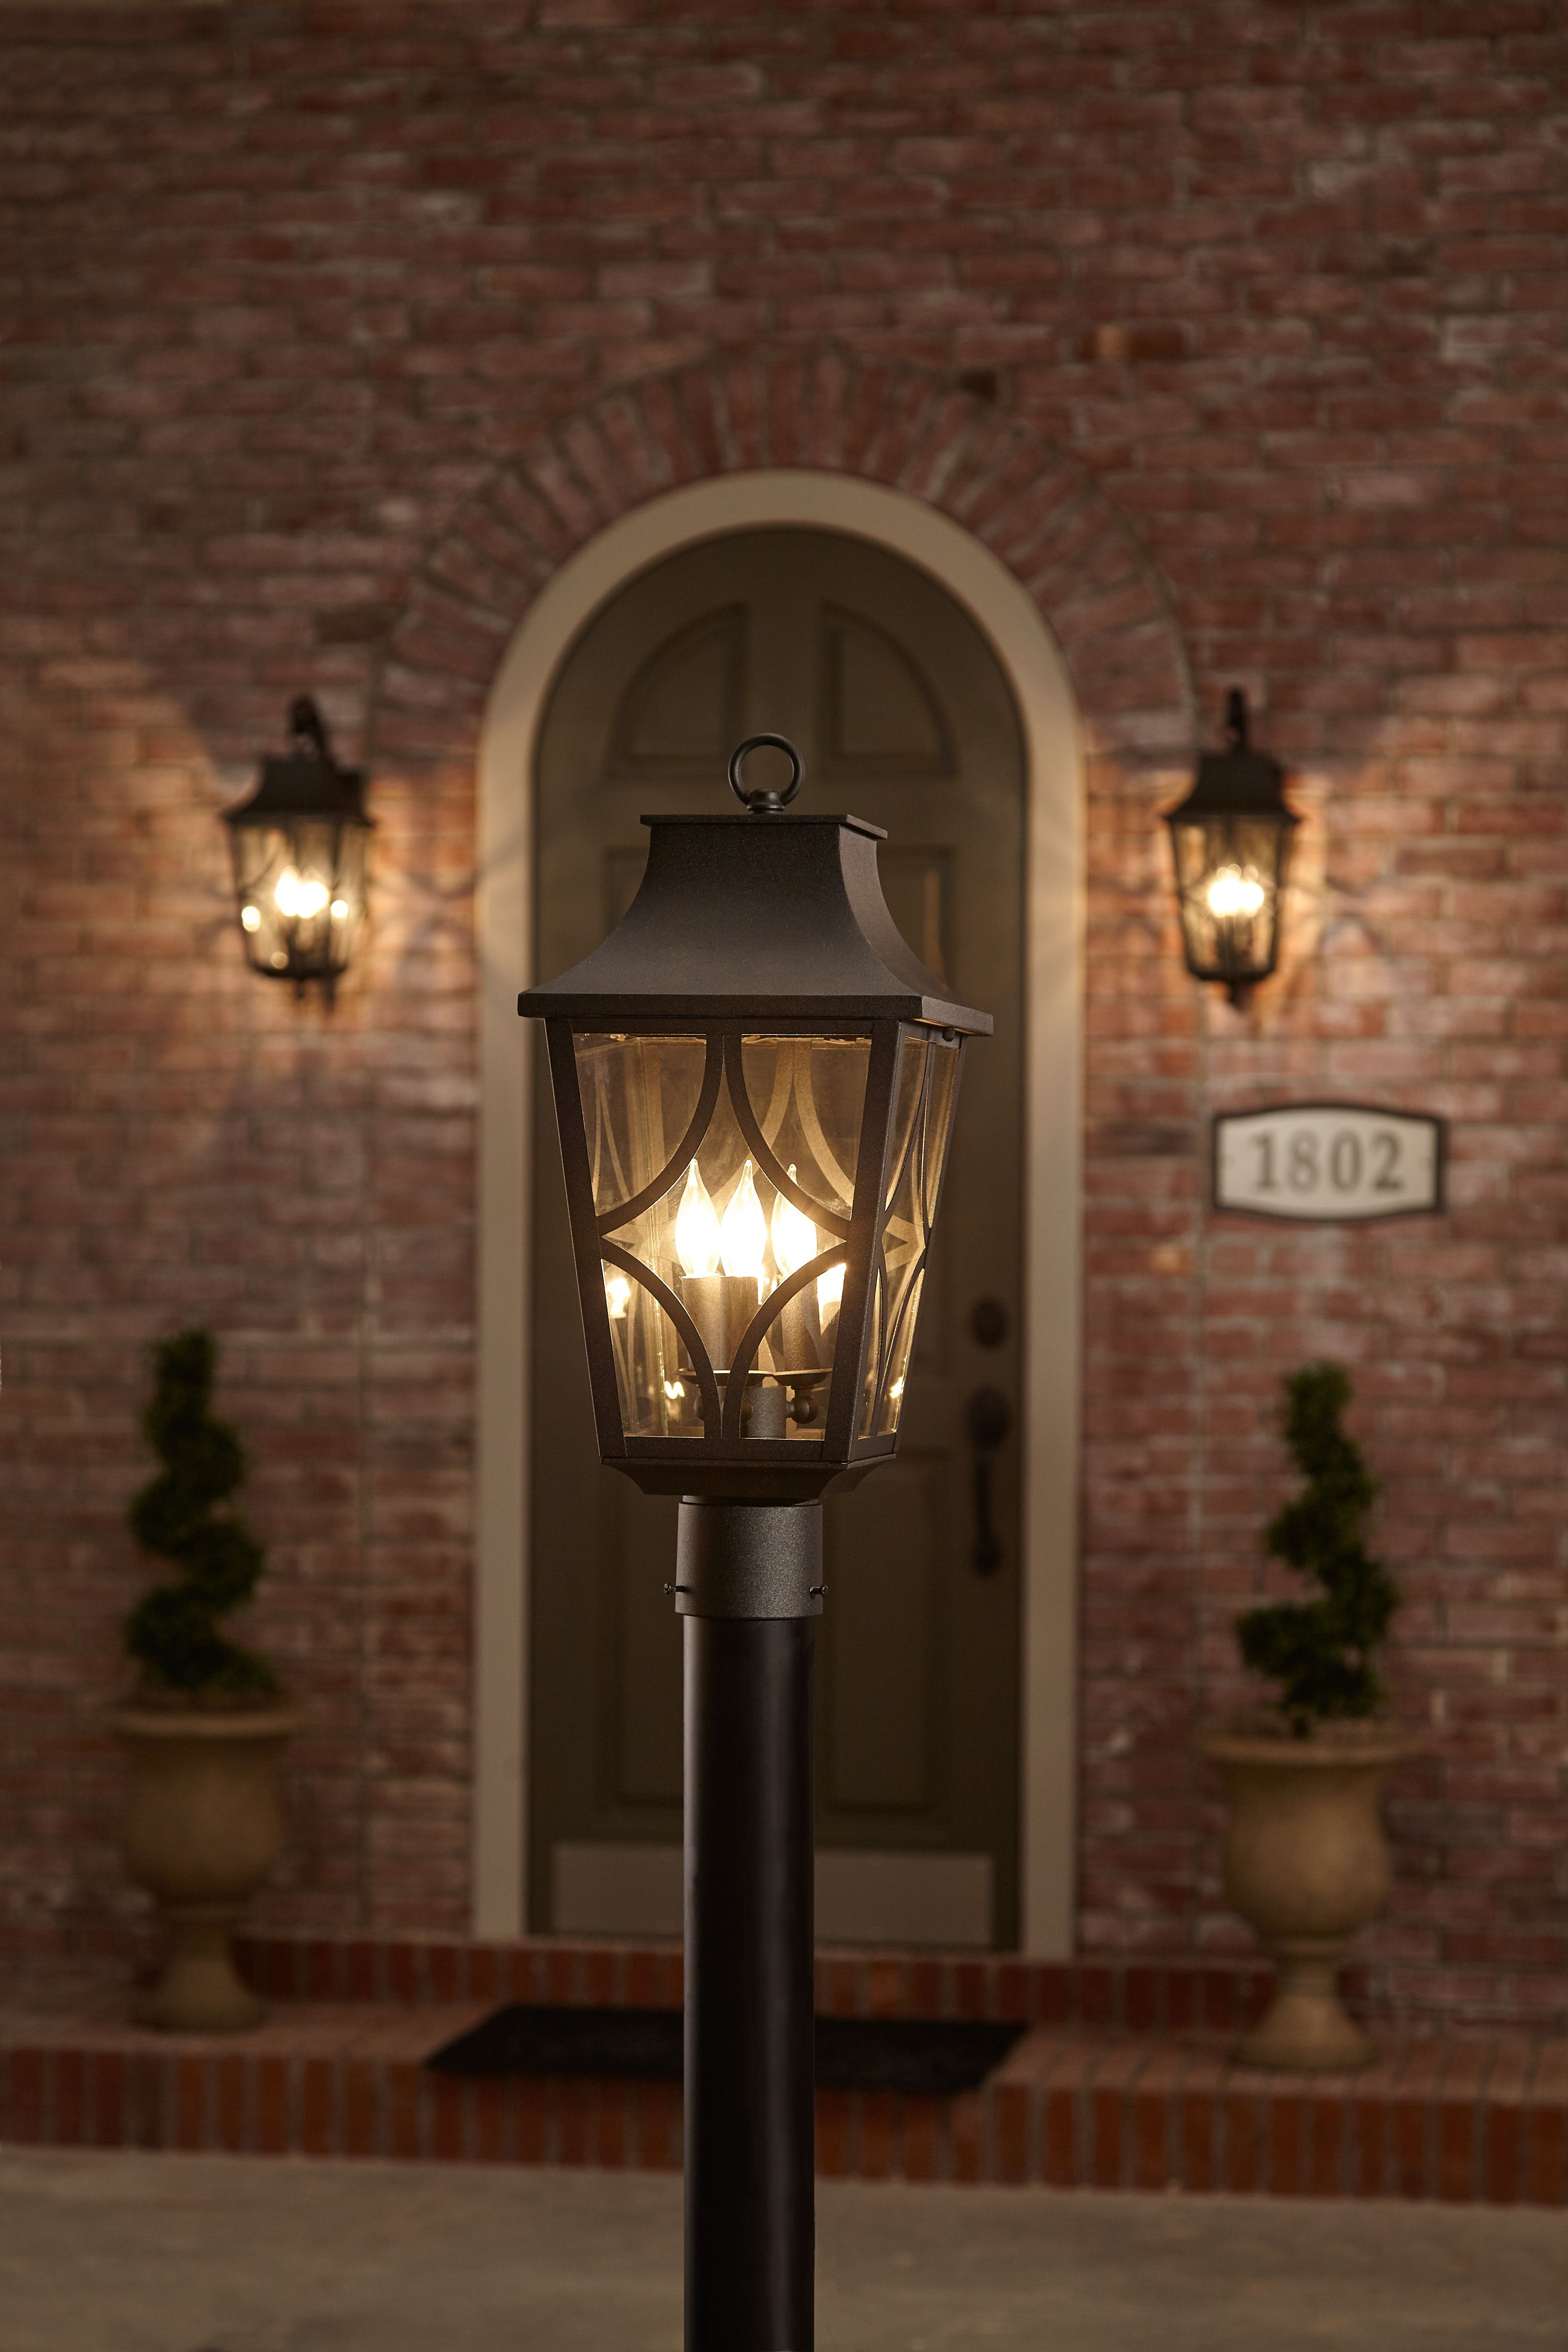 Classic Details Like The Shepherd S Crook Wall Mount Make This 3 Light Outdoor Post Light An Elegant Choice Fo Outdoor Post Lights Outdoor Lighting Post Lights